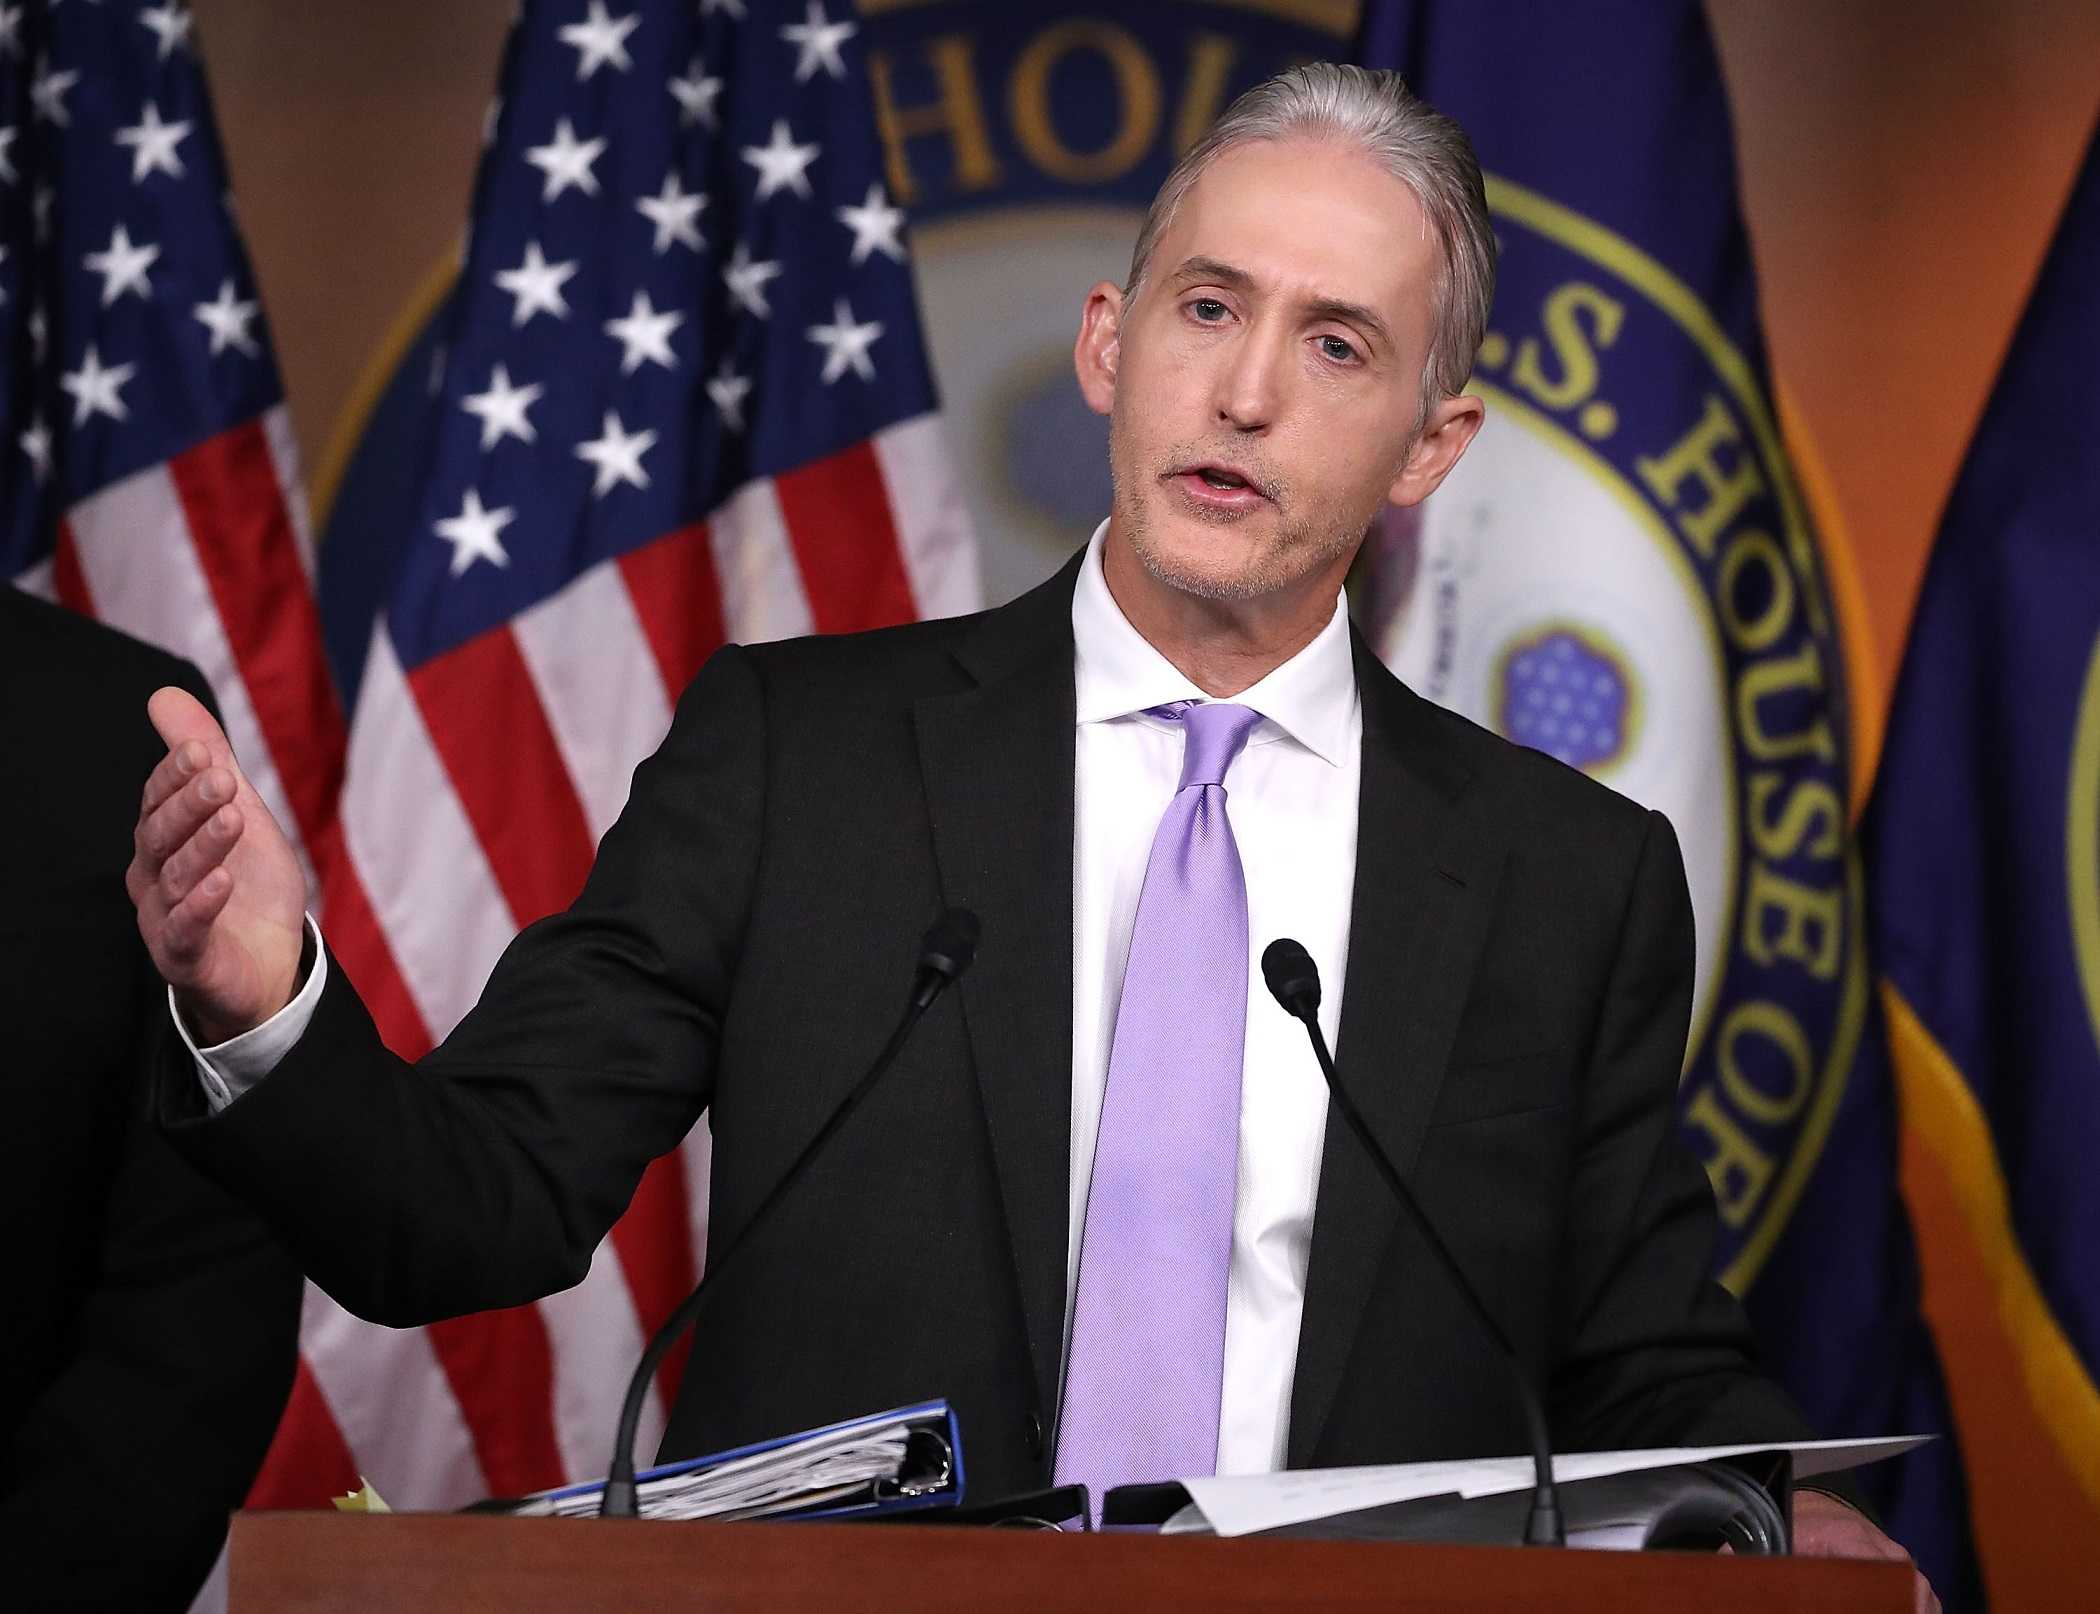 Rep. Trey Gowdy WON'T SEEK Re-Election